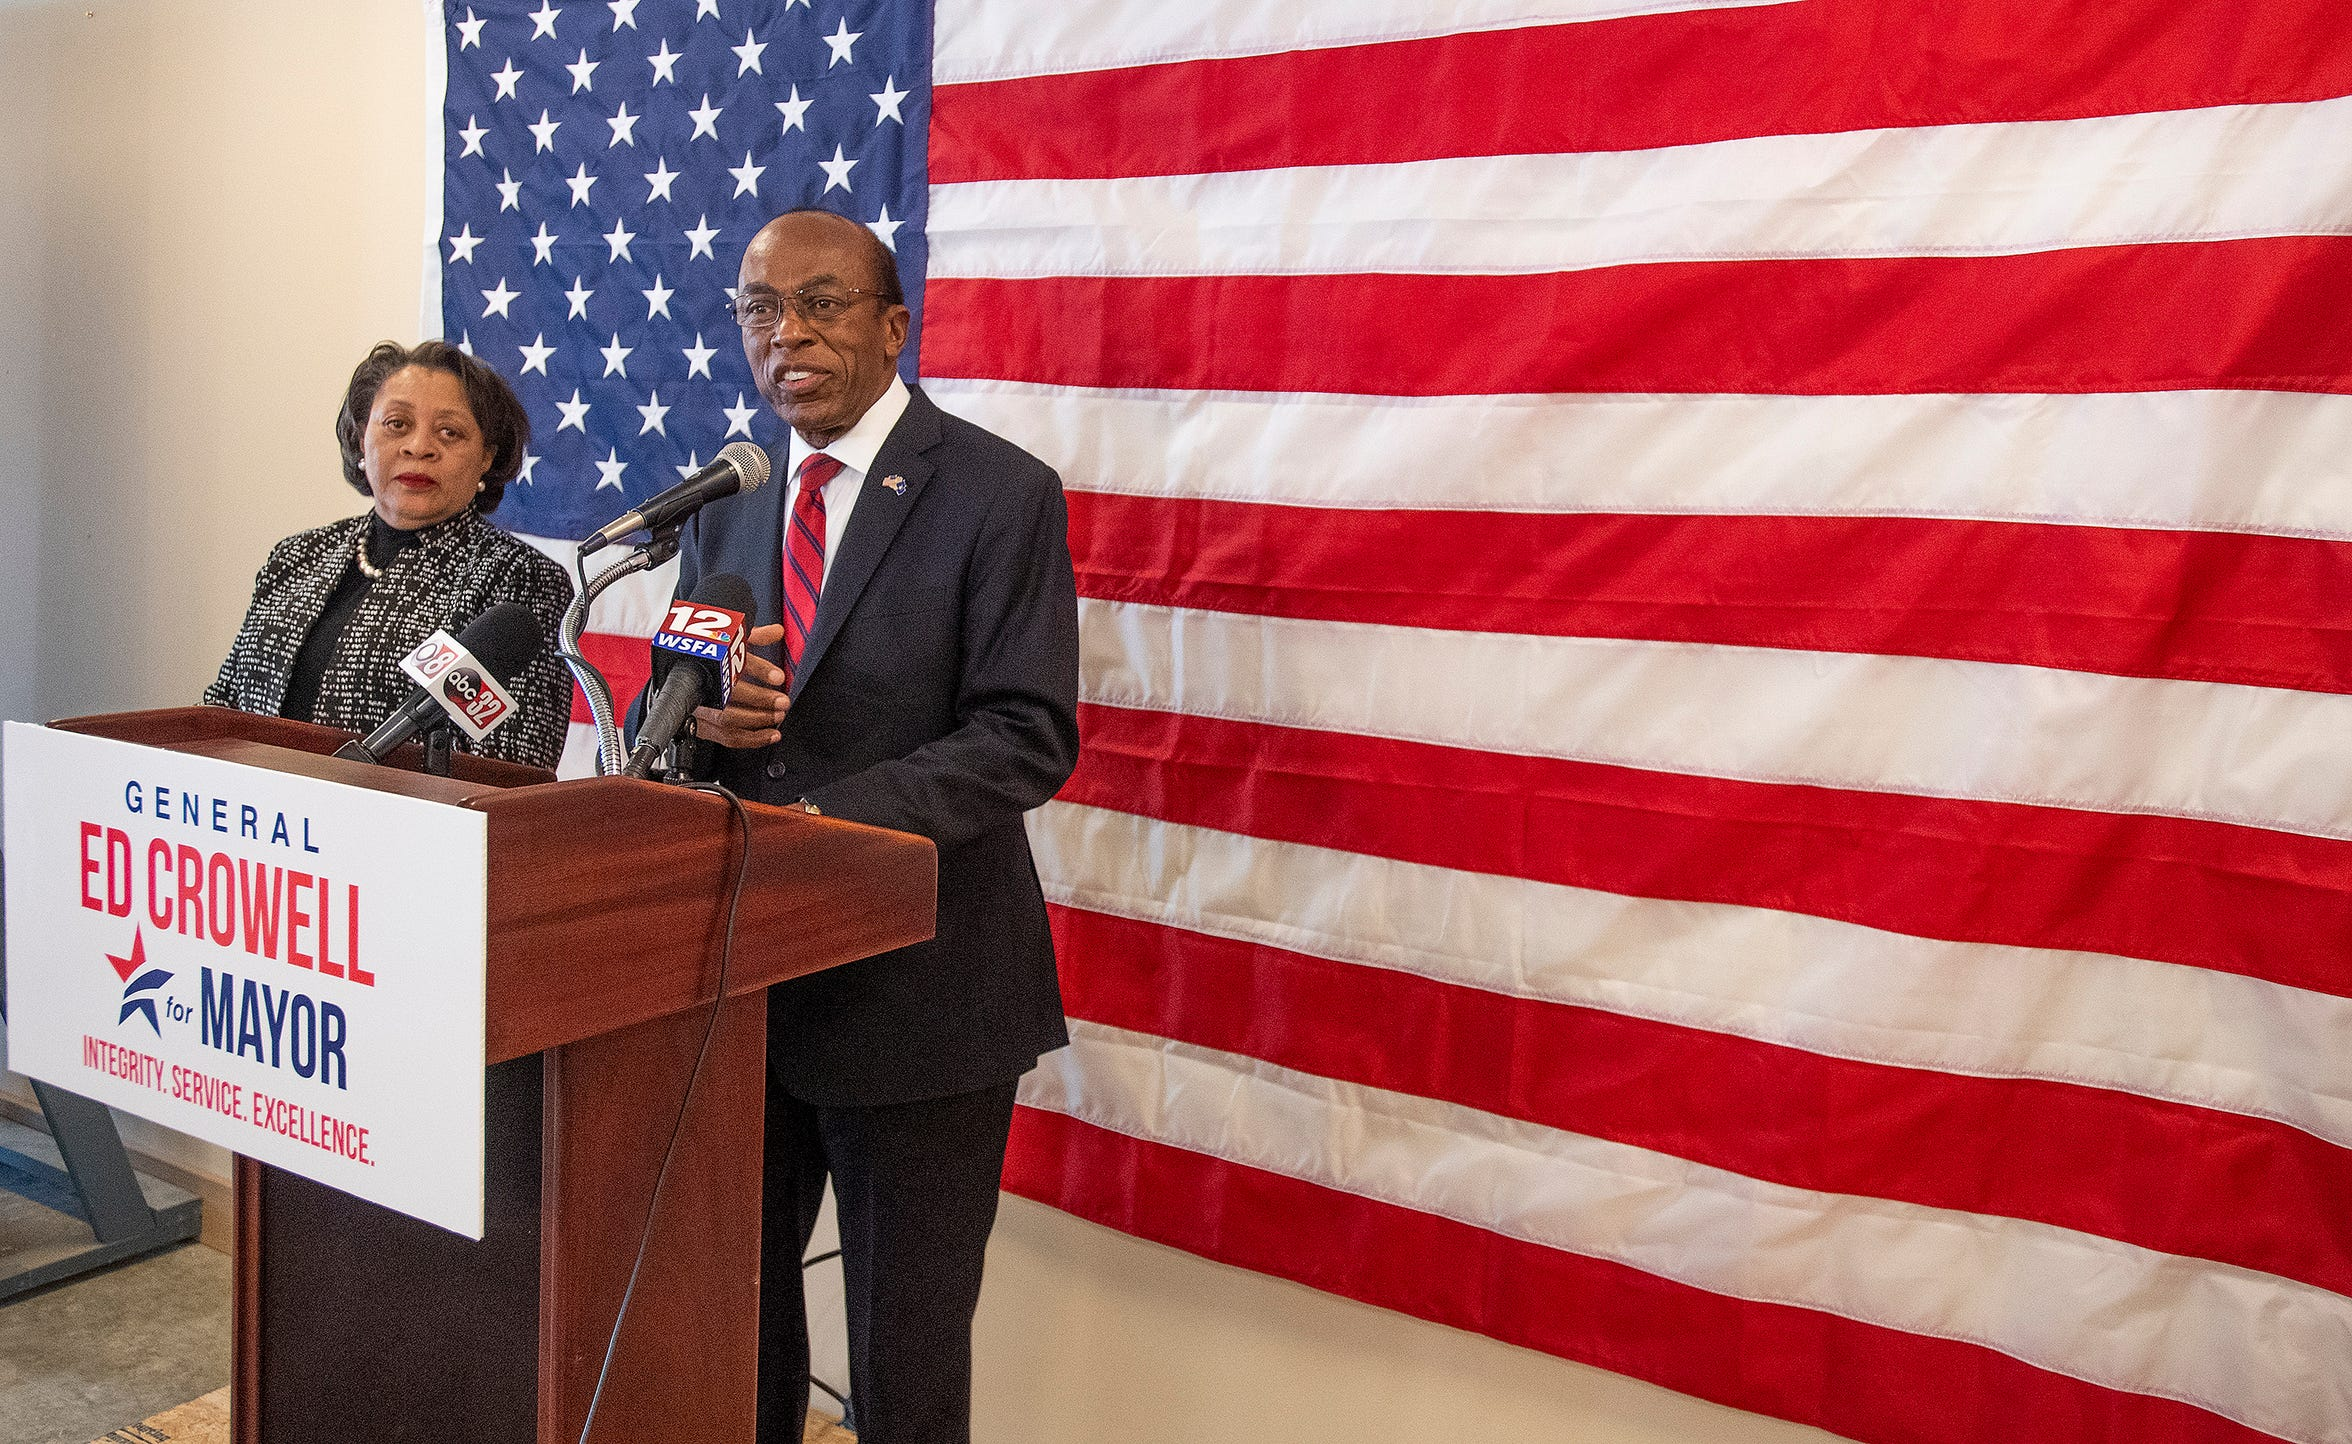 Ed Crowell, with his wife Ernestine Crowell at his side, announces that he is running for mayor of Montgomery during a press conference in Montgomery, Ala., on Monday March 25, 2019.